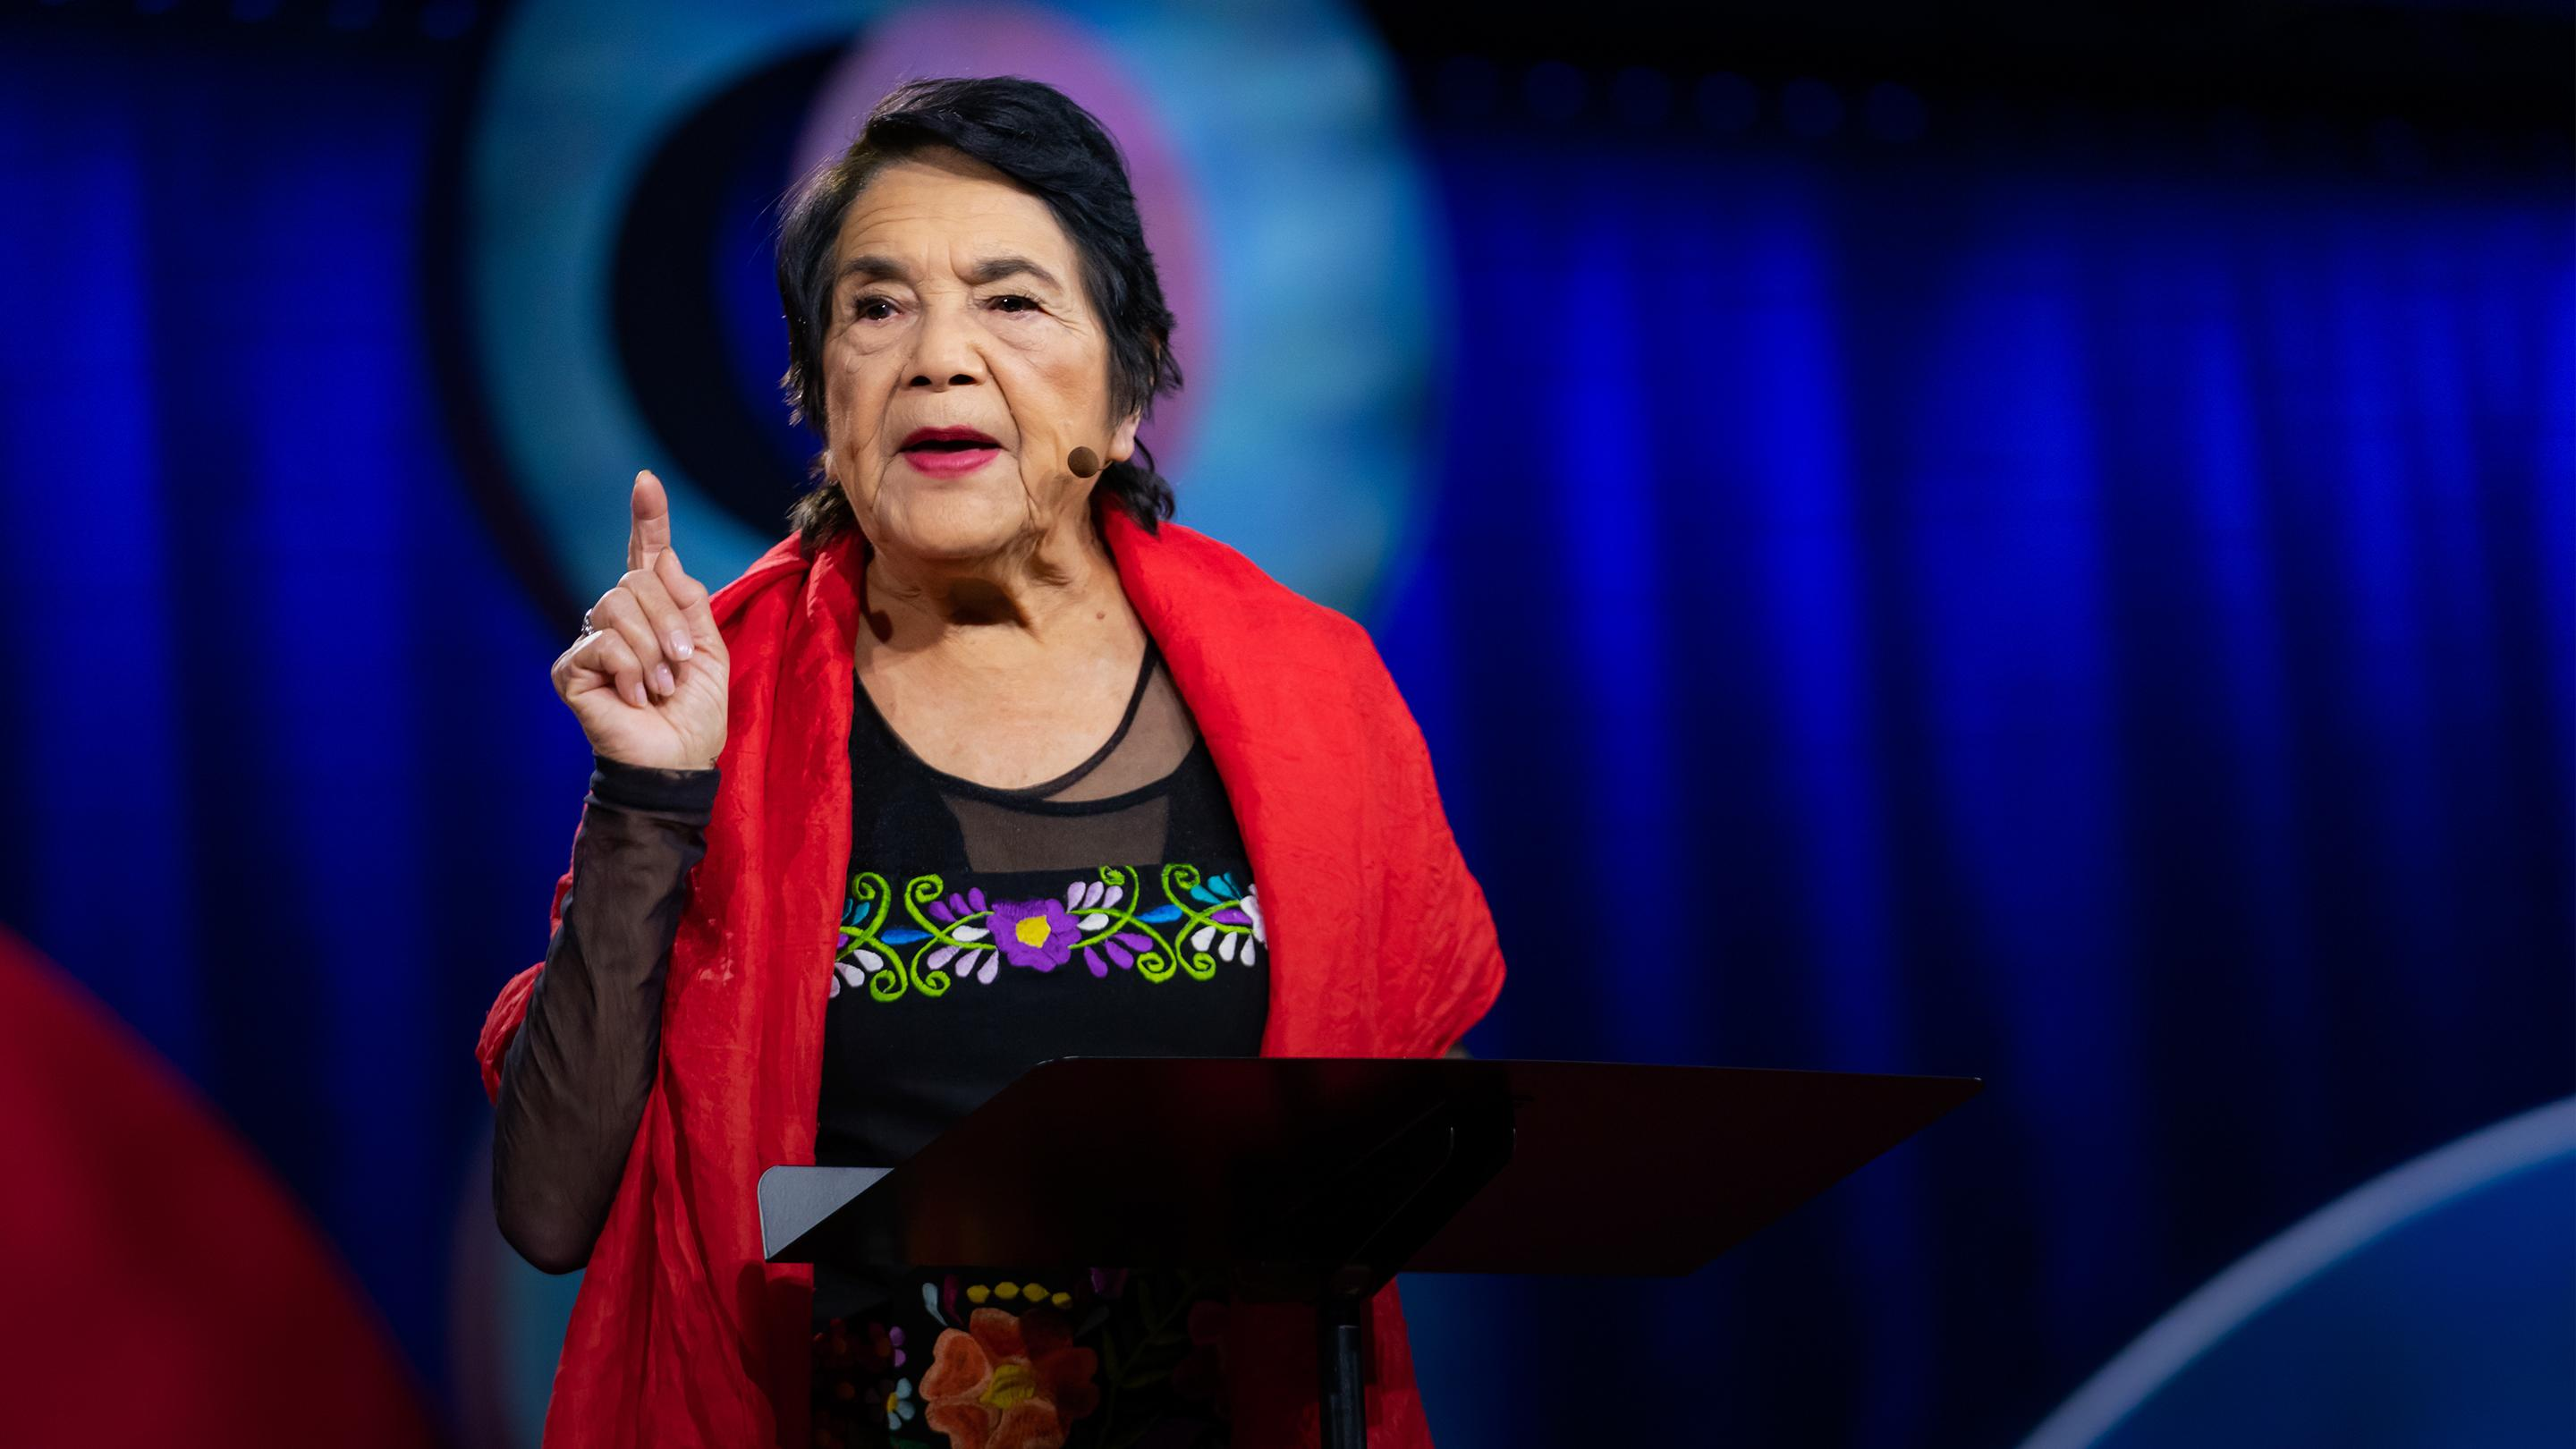 How to overcome apathy and find your power | Dolores Huerta